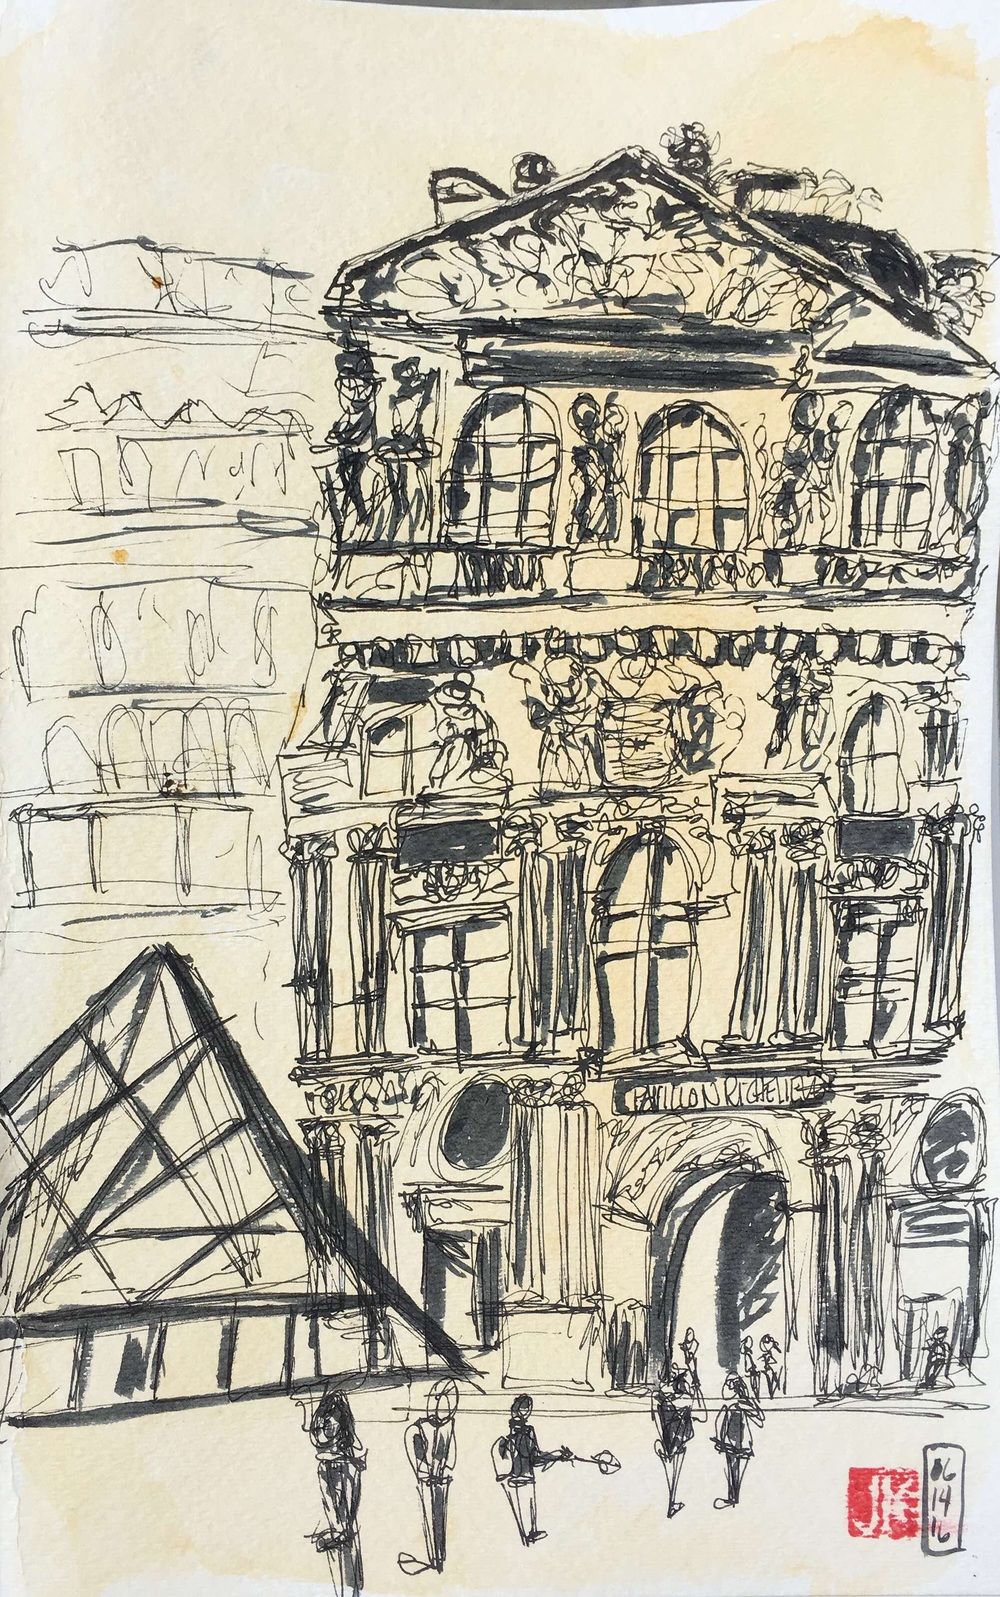 A sketch of the Louvre with just a brush pen on toned watercolor paper